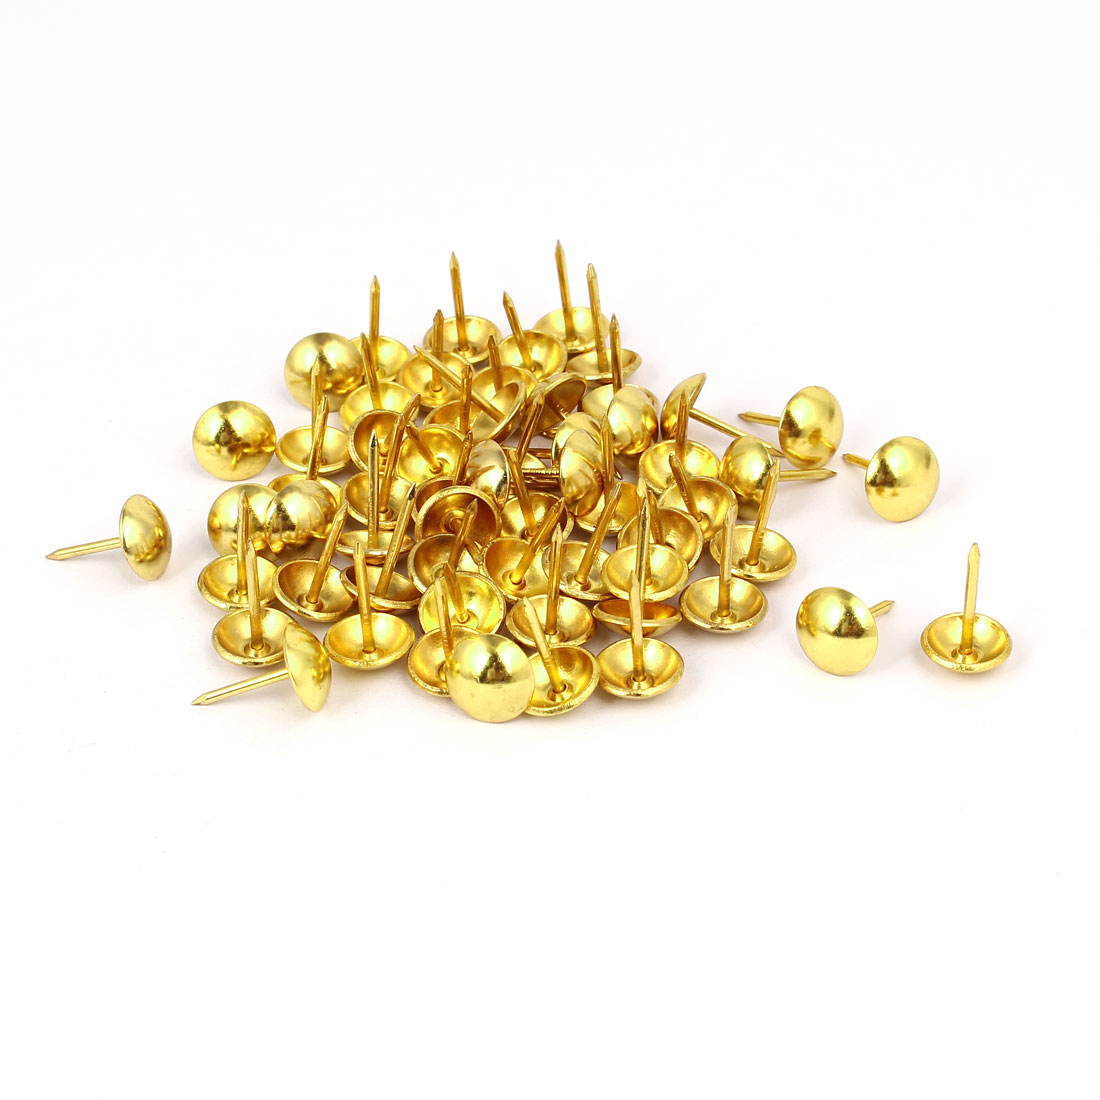 Home Furniture Upholstery Thumb Tack Nail Push Pin Gold Tone 11mm x 17mm 60pcs